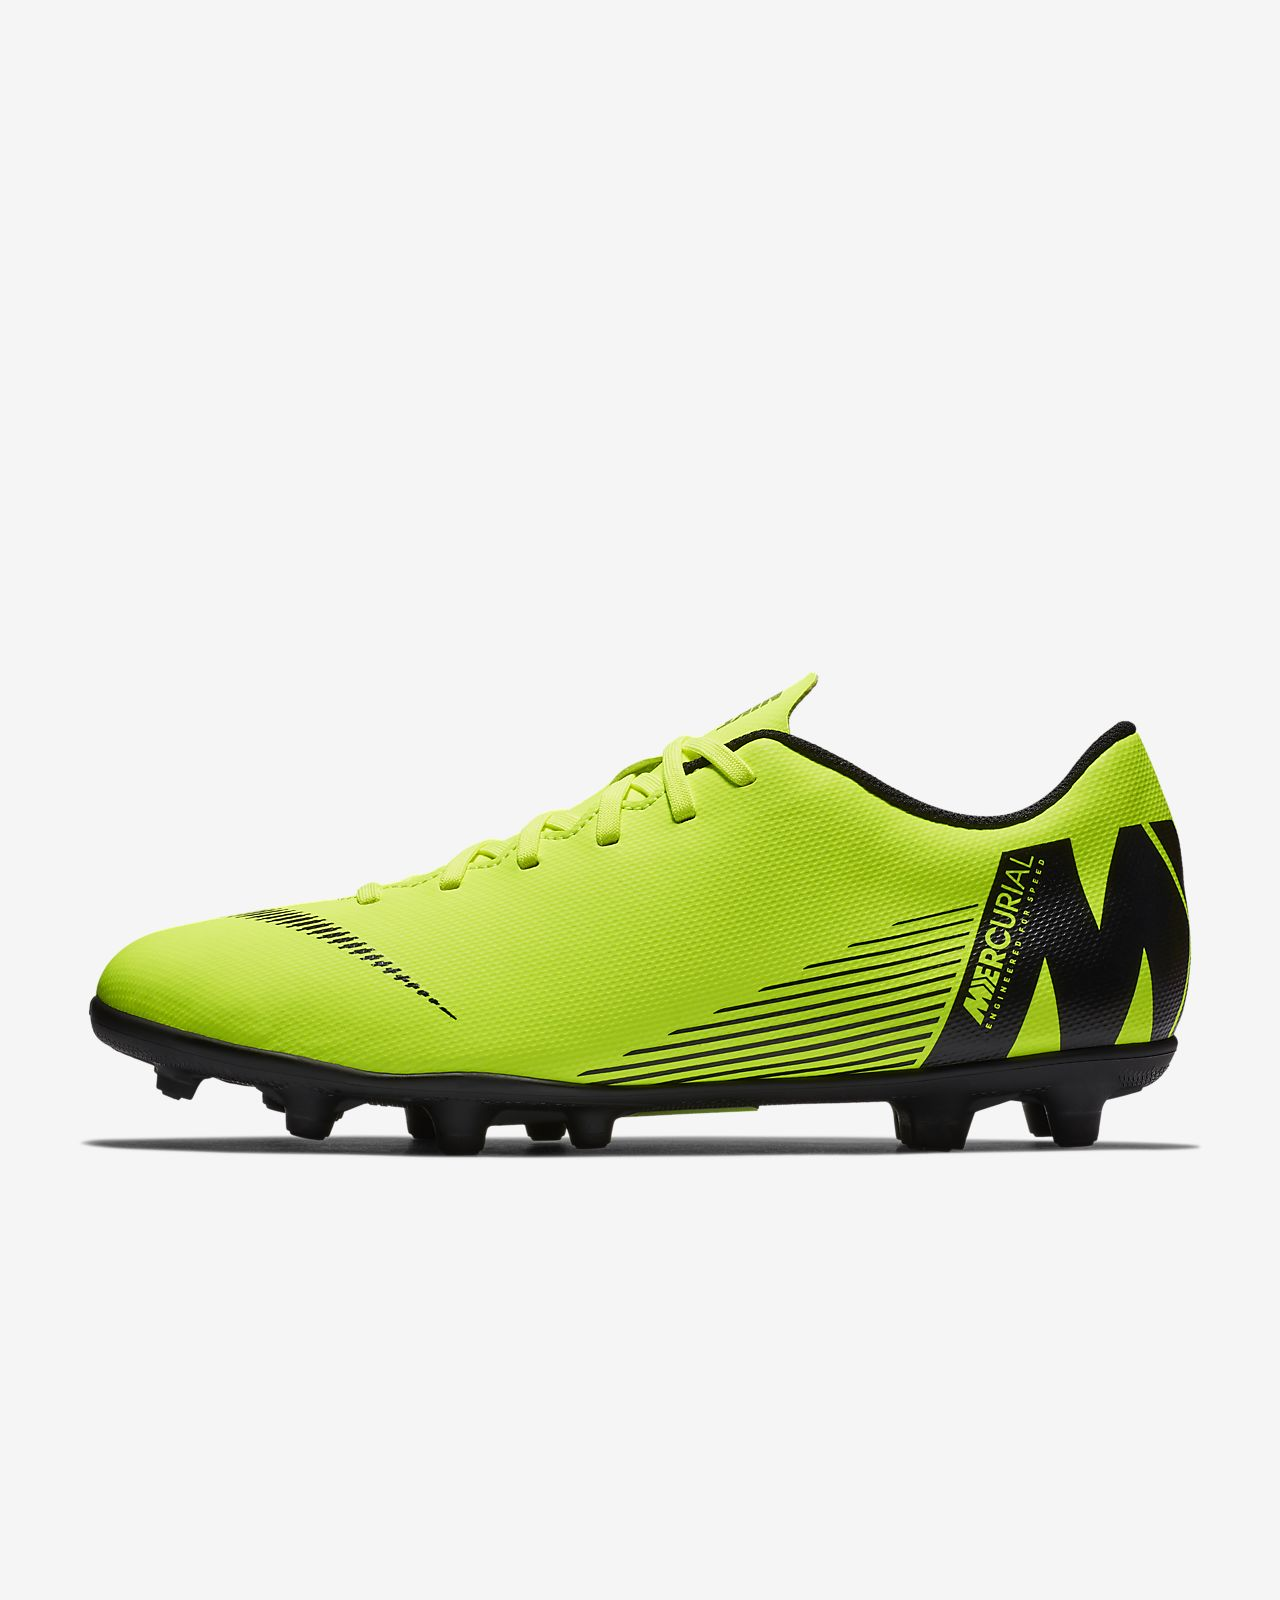 ca4d73fa79386 ... best price nike mercurial vapor xii club multi ground soccer cleat  420a5 54640